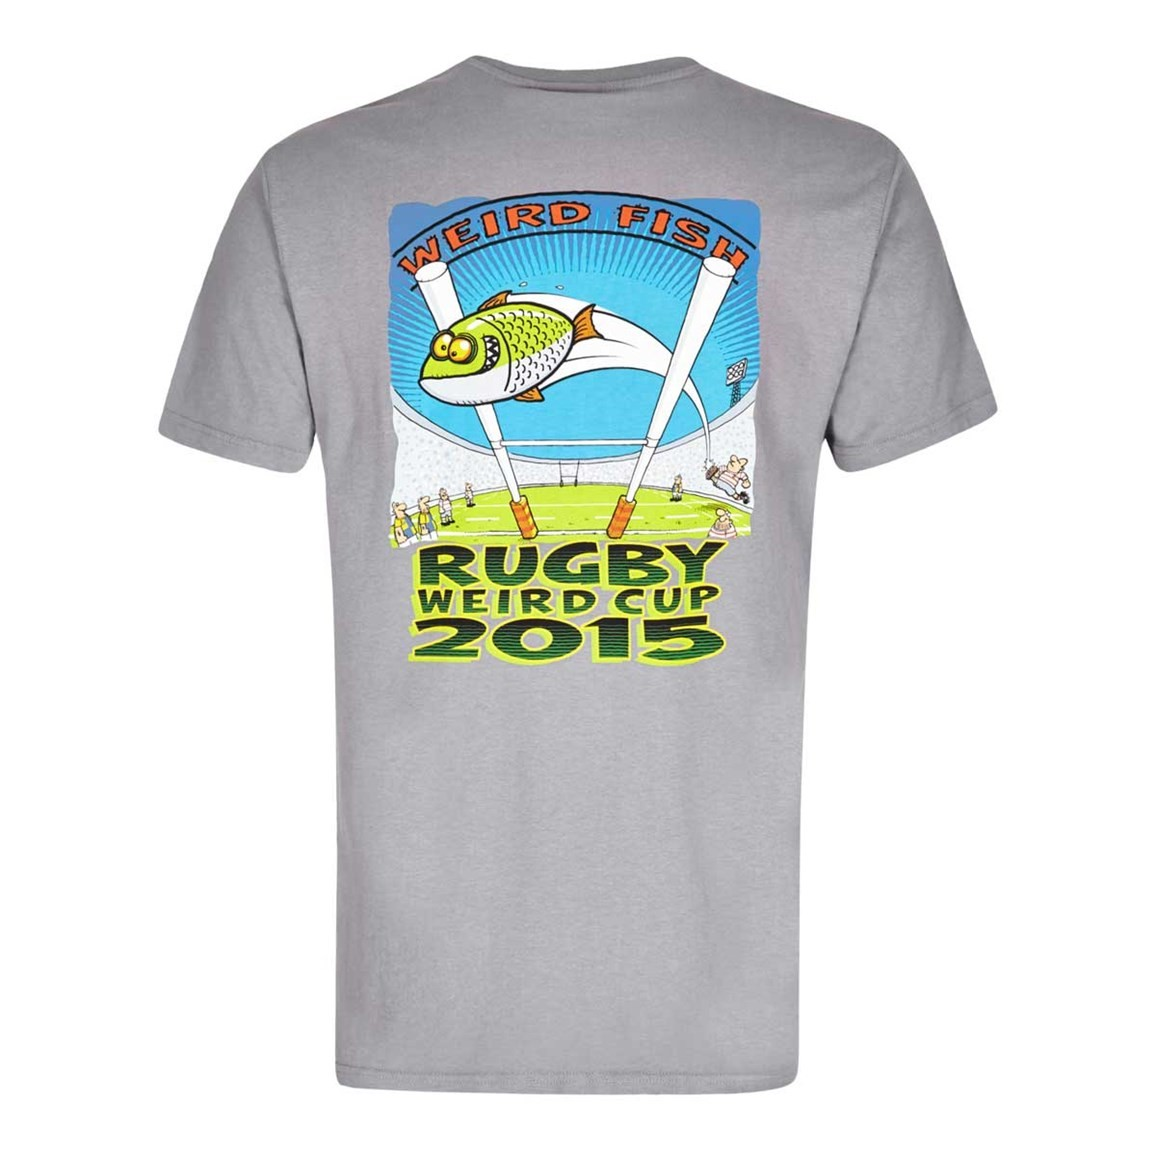 Weird Fish Rugby World Cup Printed Artist T-Shirt Frost Grey Size 2XL